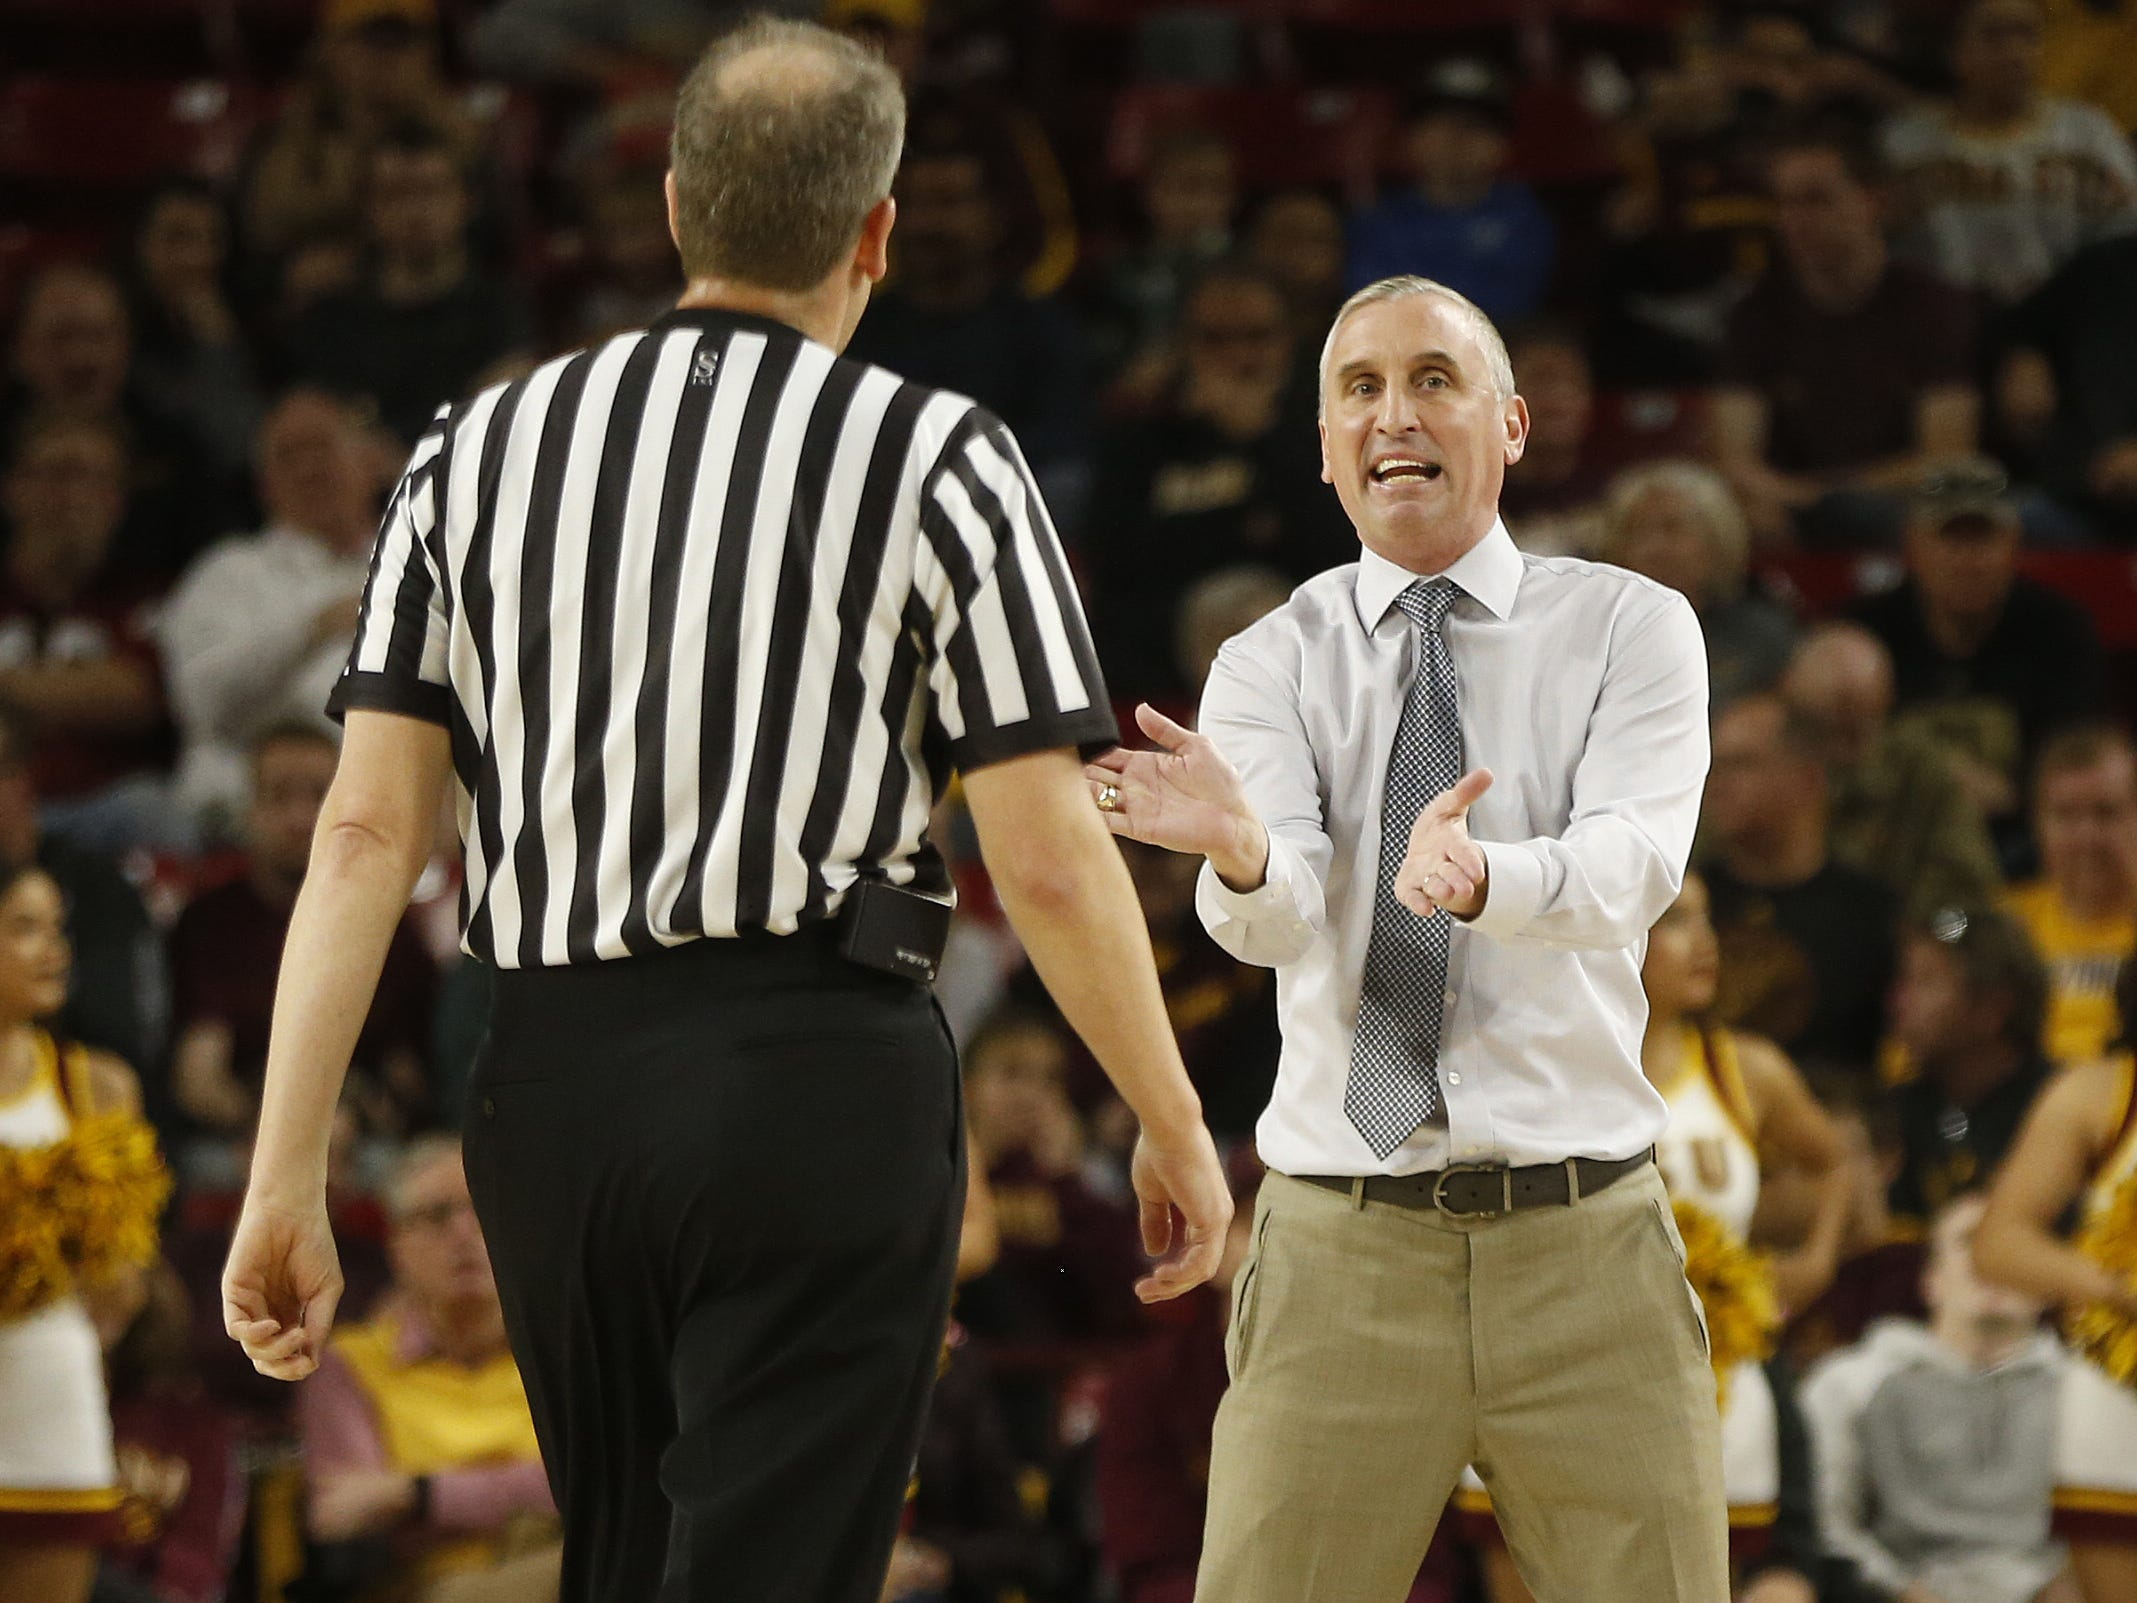 ASU's head coach Bobby Hurley argues with the officials during the first half against Princeton at Wells Fargo Arena in Tempe, Ariz. on December 29, 2018.